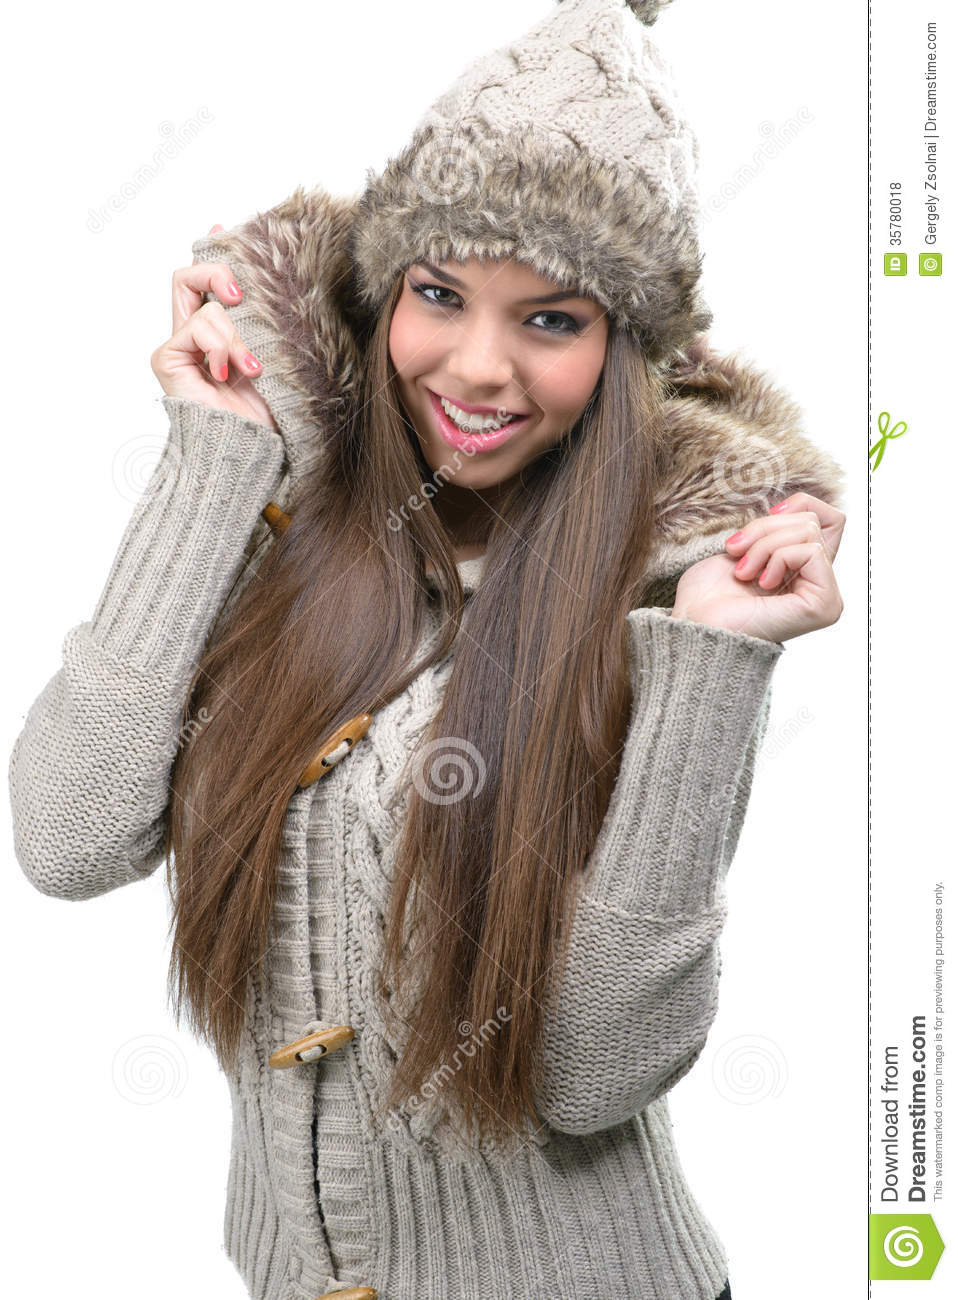 Fashion model warm winter clothing royalty free stock photos image 35780018 Fashion solitaire winter style